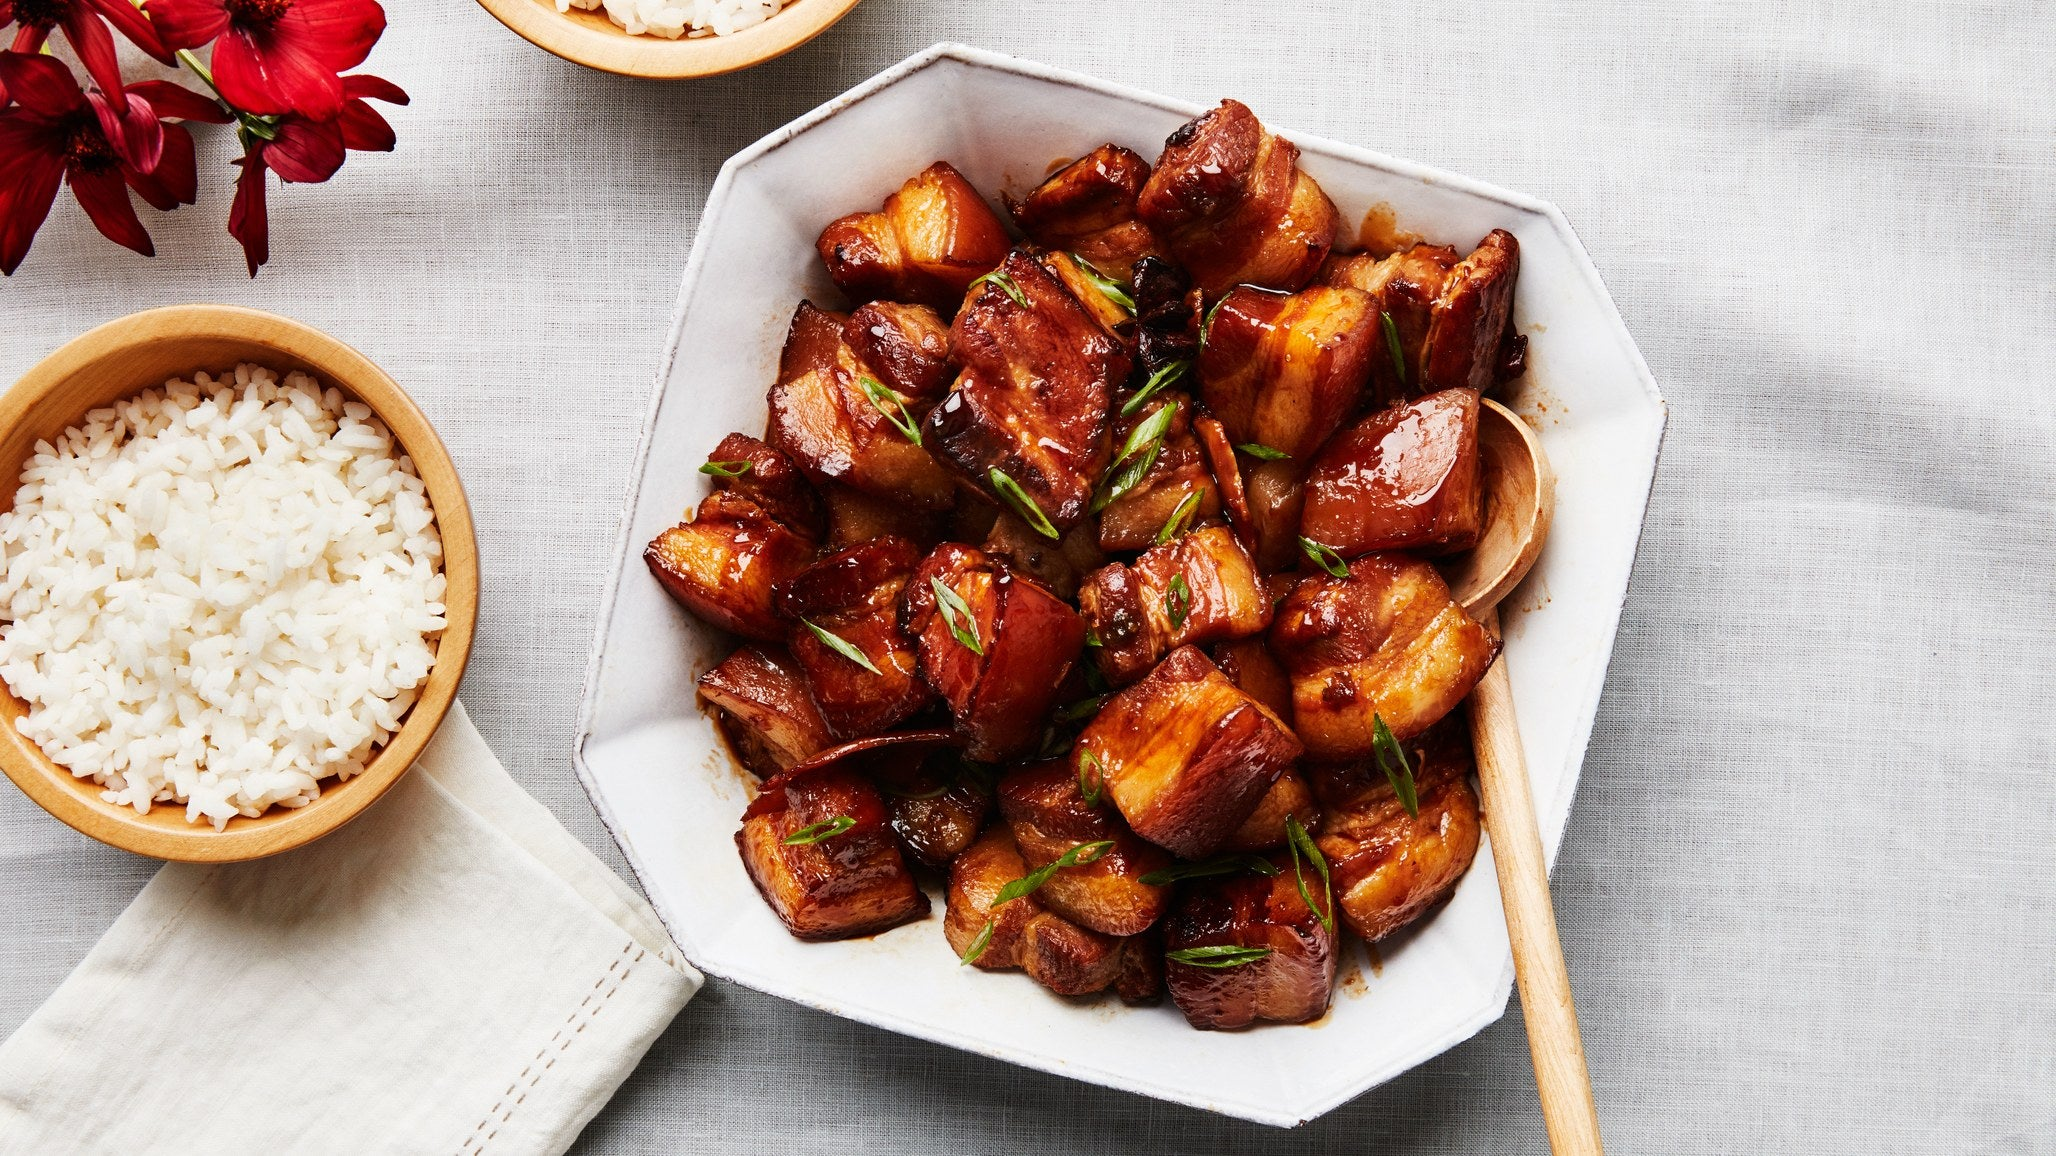 Red-Braised Pork Belly (Hong Shao Rou)